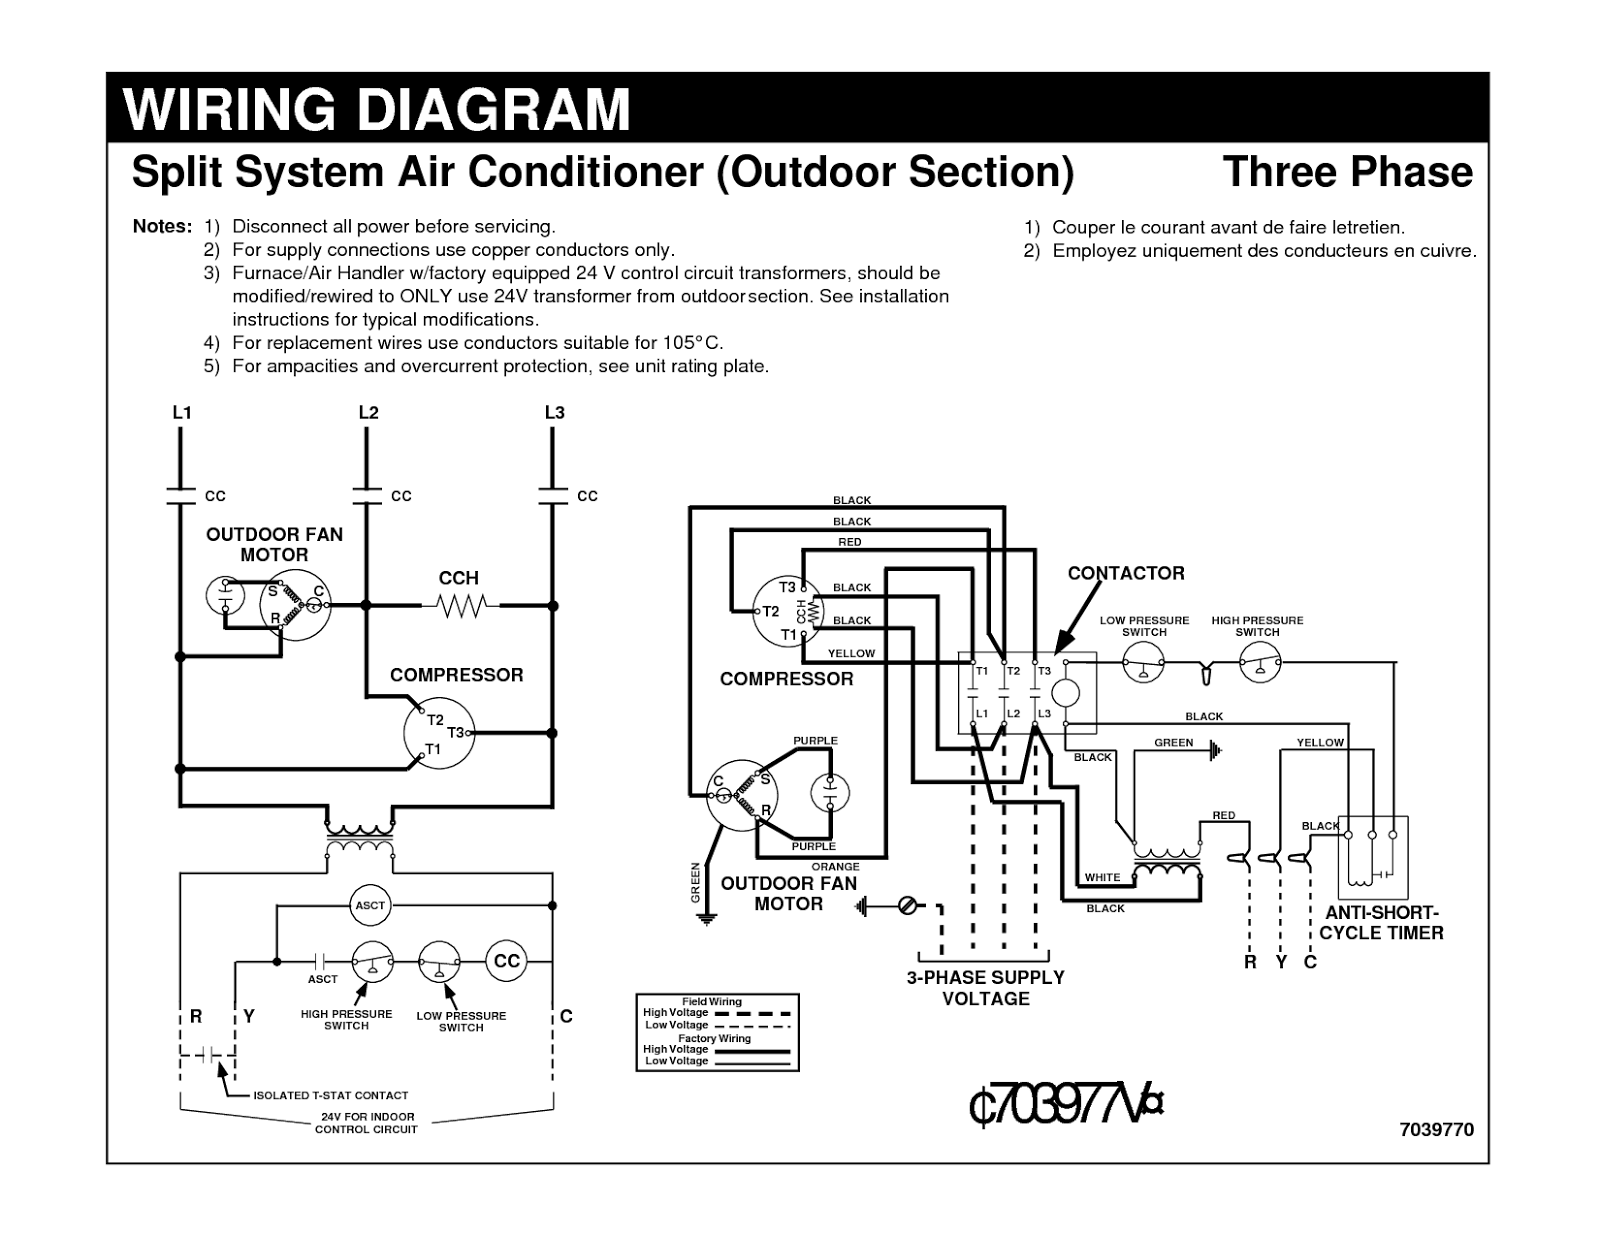 Wiring Diagram Ac Co - The Structural Wiring Diagram • on home air conditioning wiring diagrams, trane air conditioners wiring diagrams, automotive air conditioning wiring diagrams, mitsubishi air conditioners wiring diagrams, central air conditioning wiring diagrams, window air conditioning wiring diagrams, auto air conditioning wiring diagrams, carrier air conditioning wiring diagrams, york air conditioners wiring diagrams,